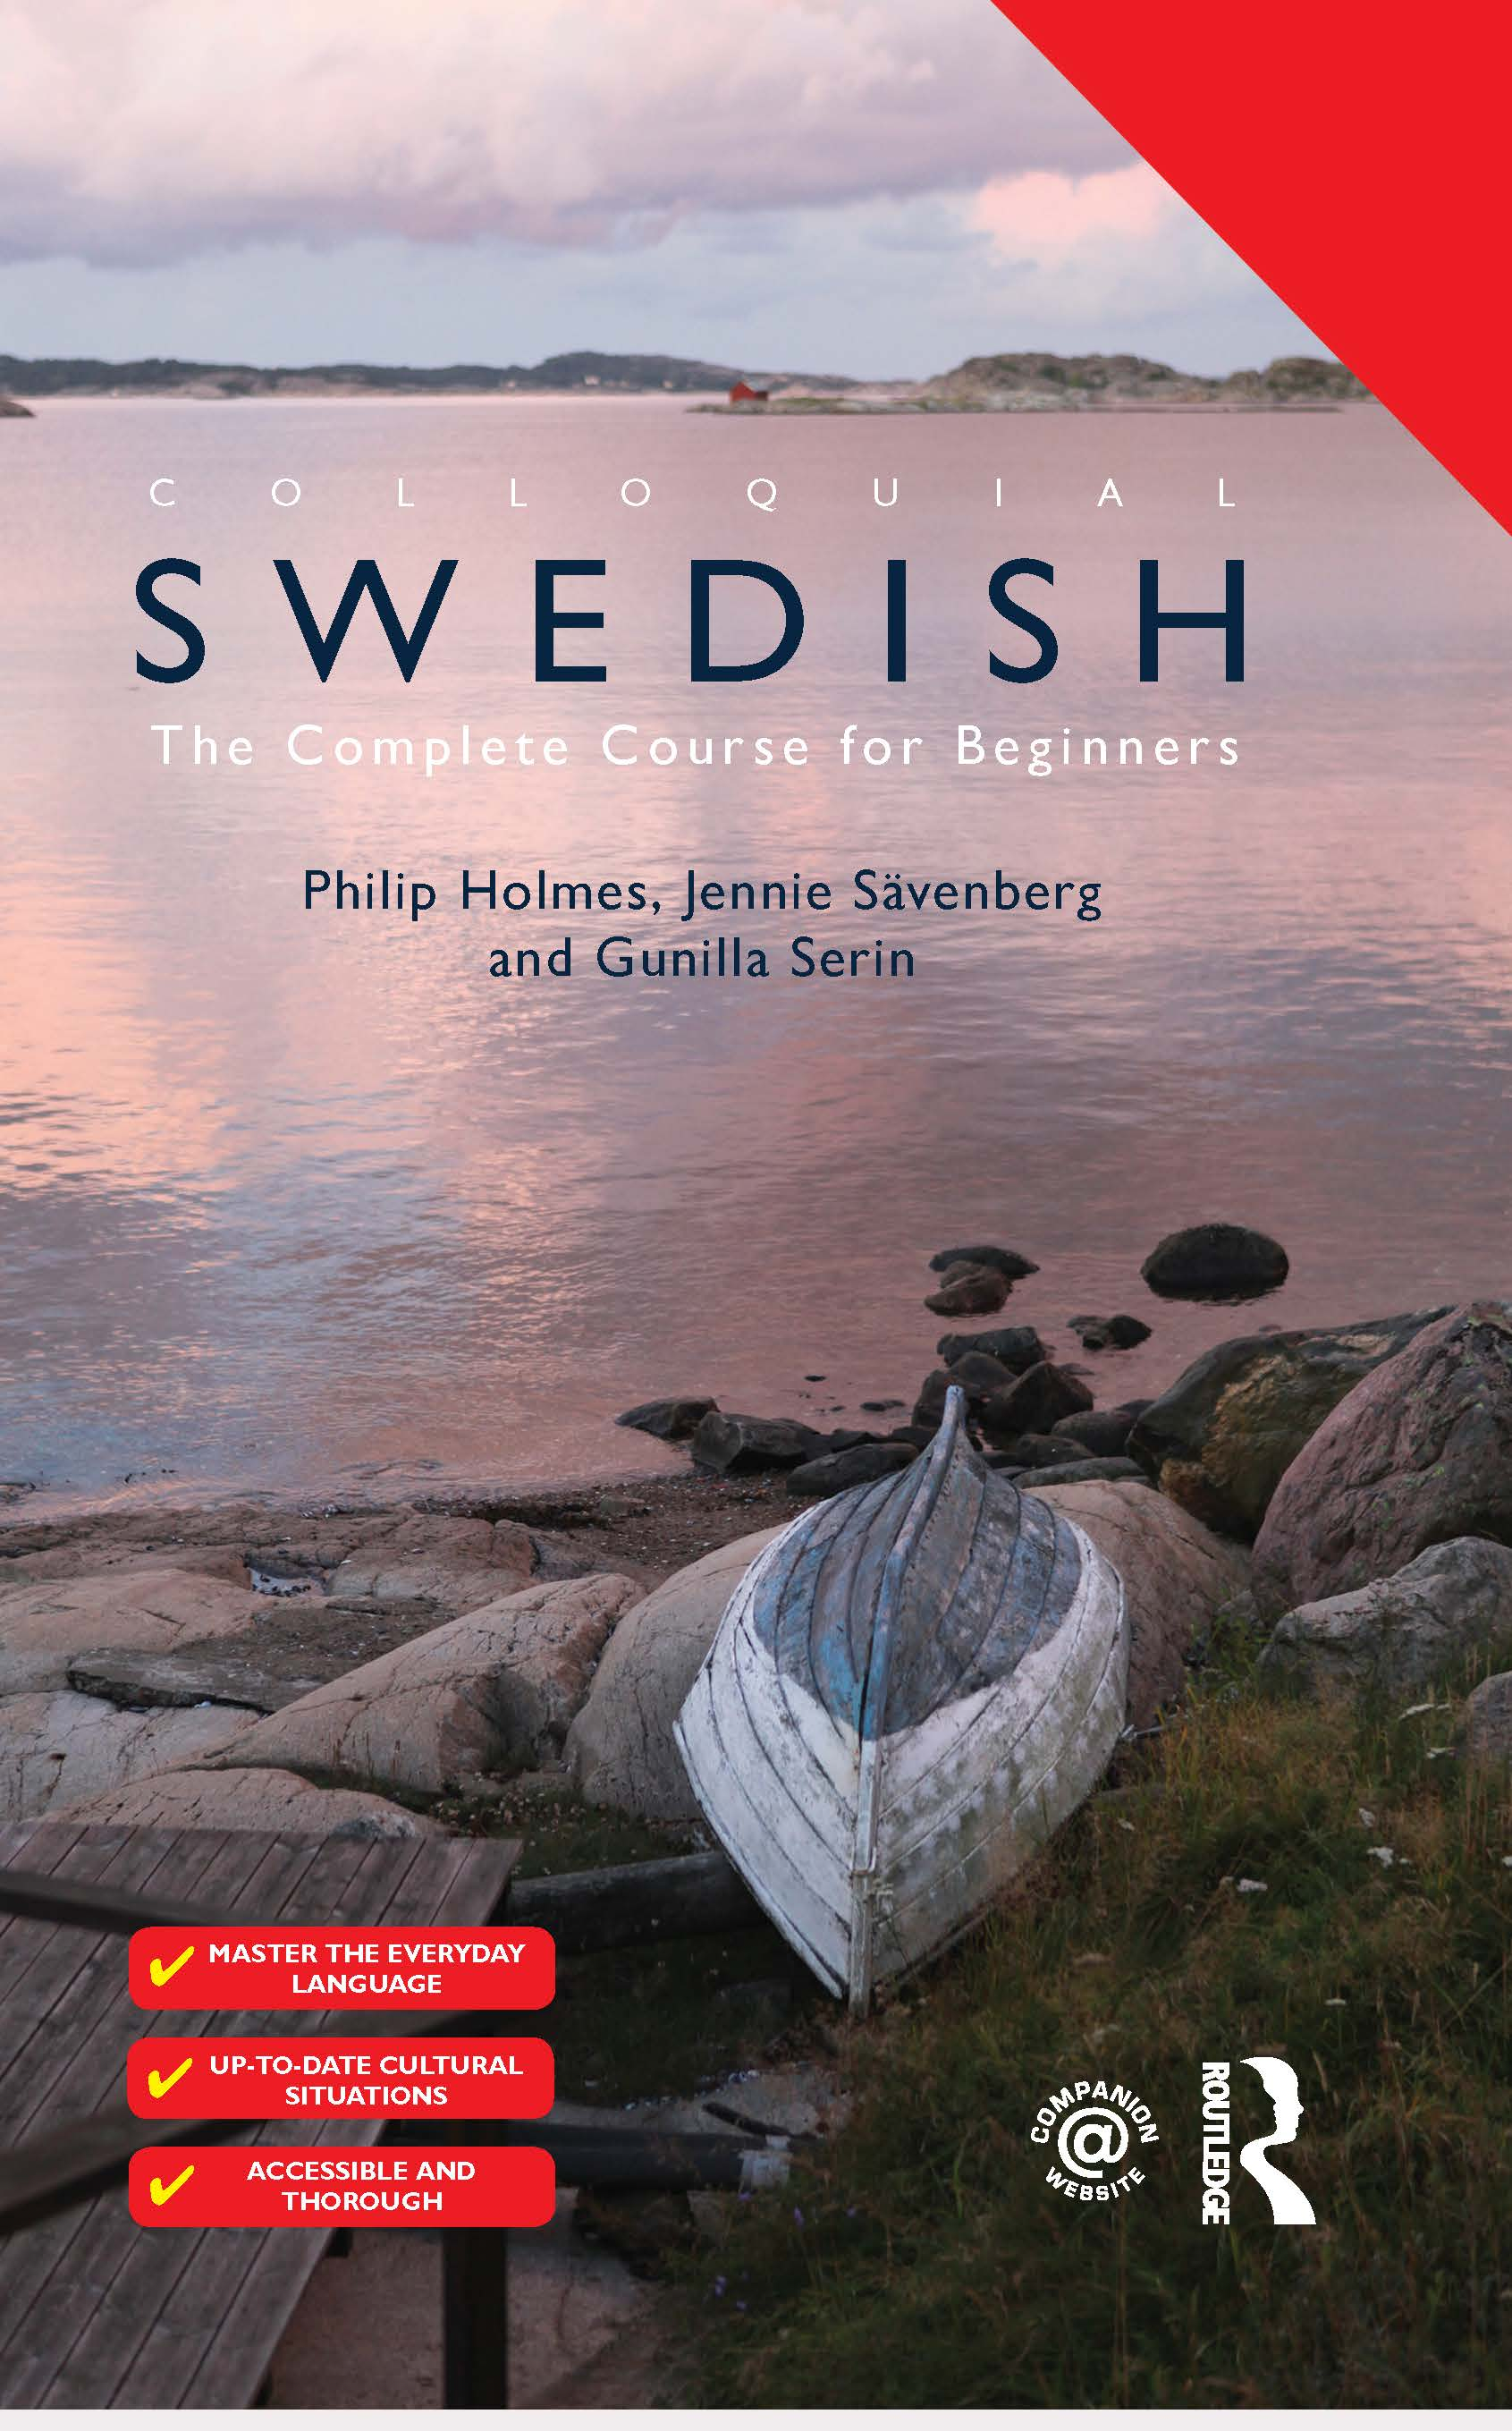 Colloquial Swedish: The Complete Course for Beginners book cover